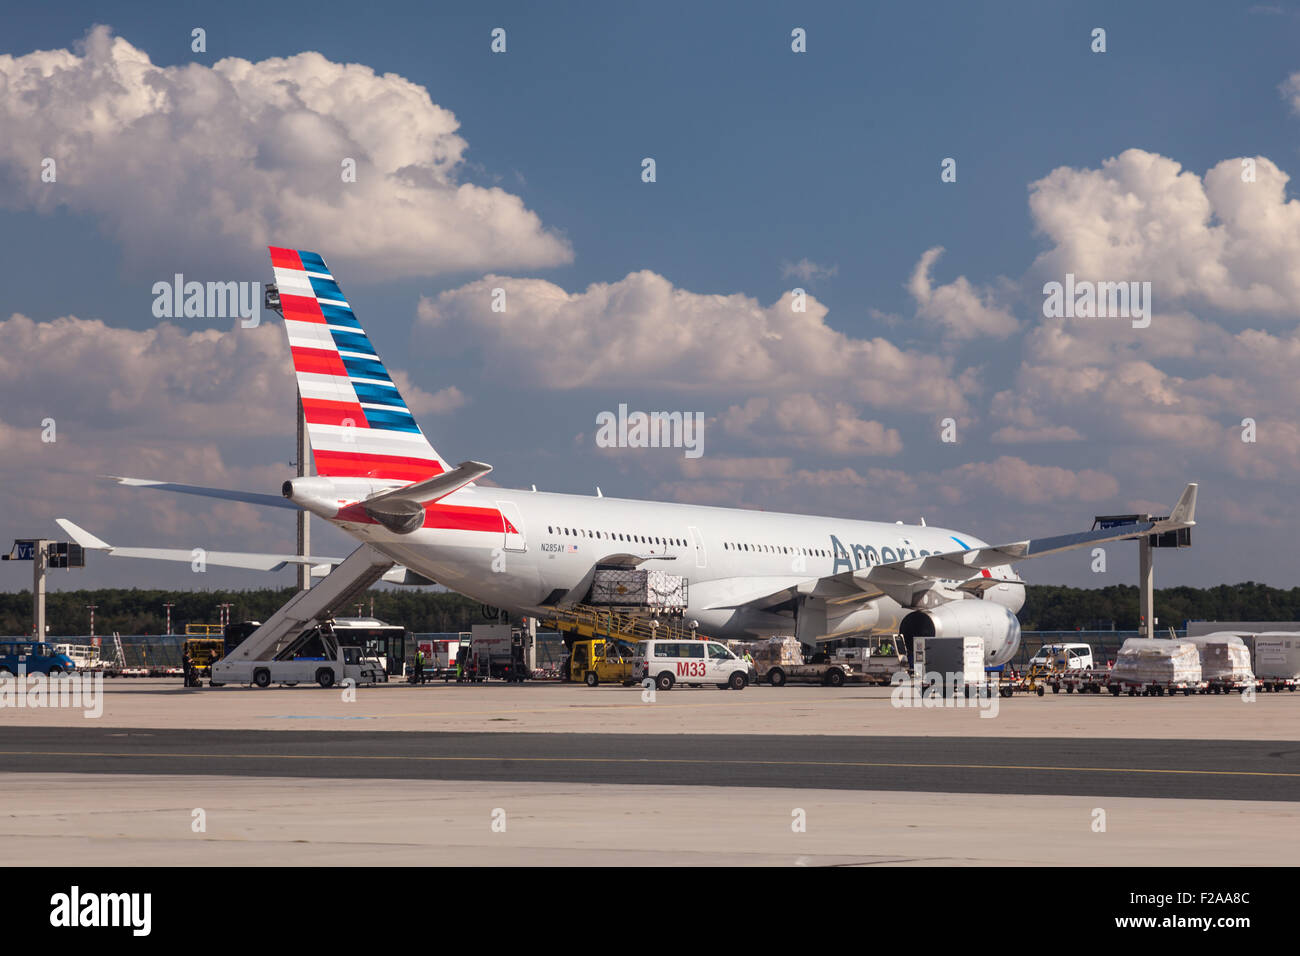 American Airlines Airbus A330-243 - Stock Image